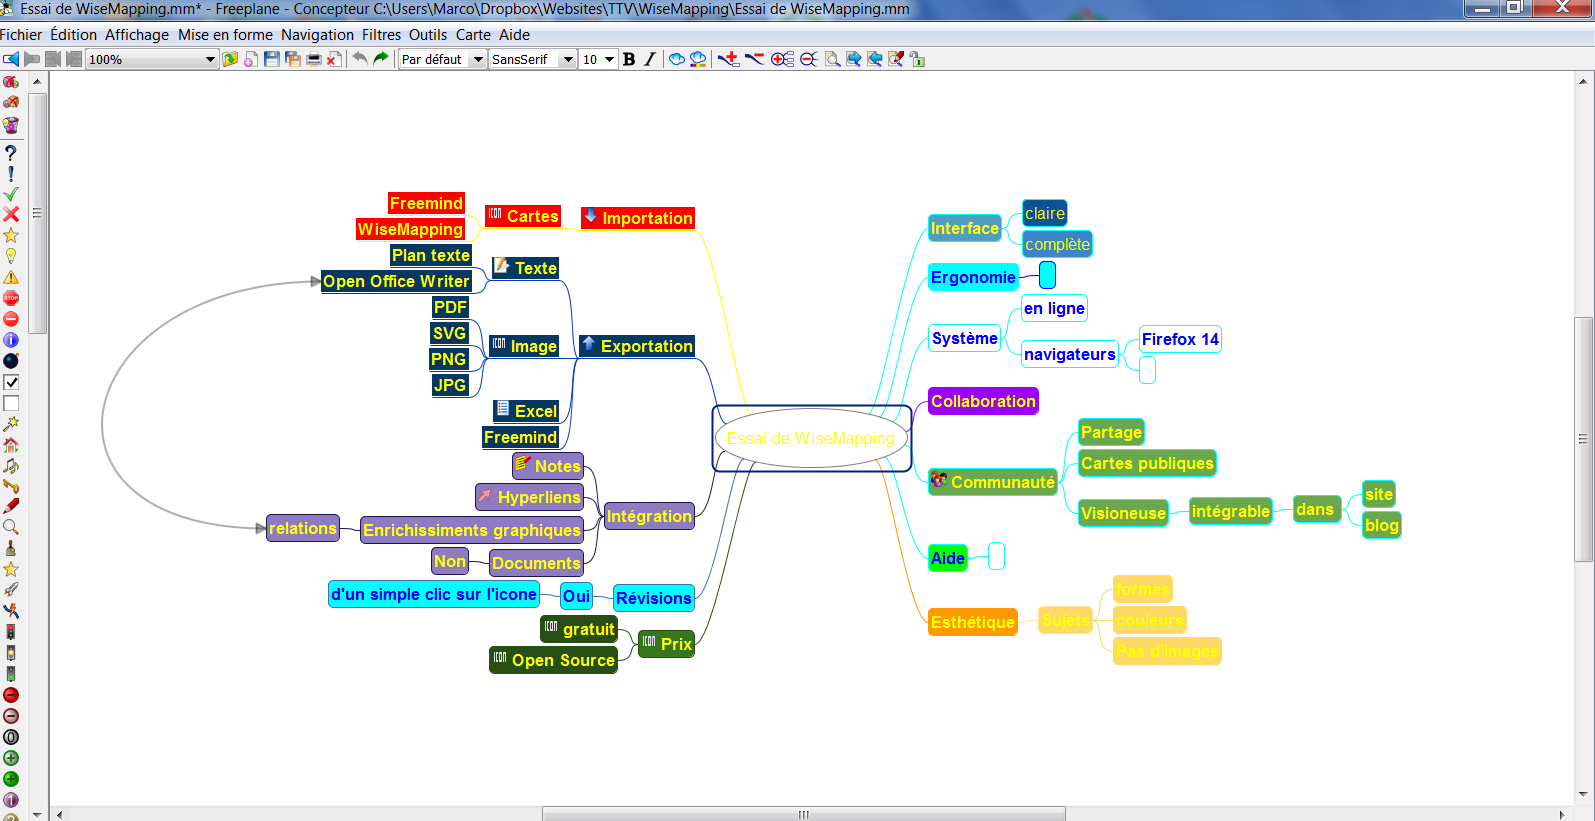 Wisemapping du mindmapping collaboratif gratuit et open source formation 3 0 for Plan en d gratuit en ligne